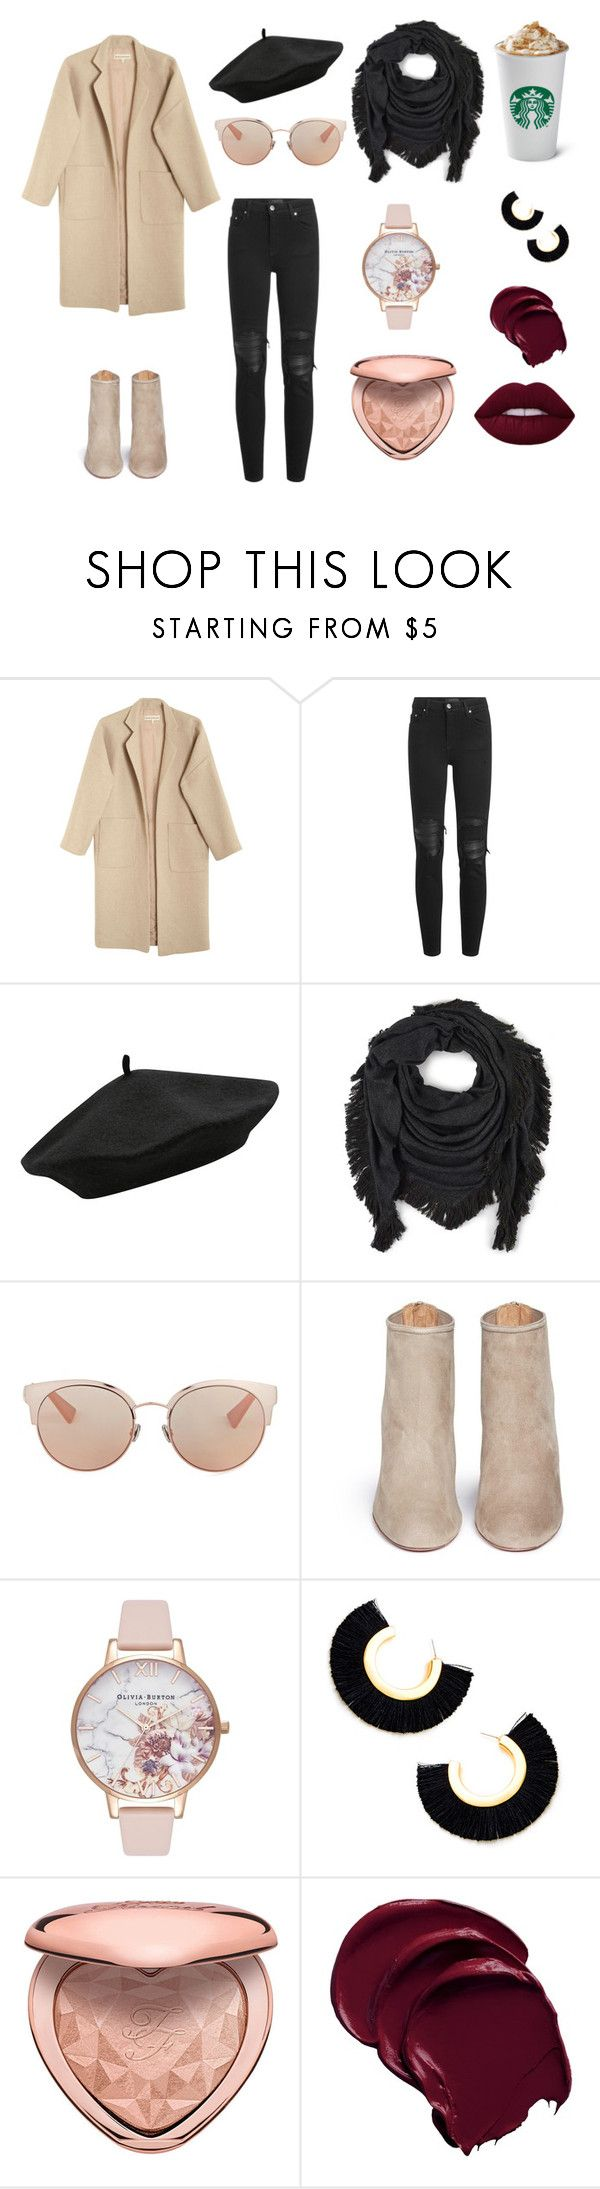 """NOVEMBER RAIN SET 